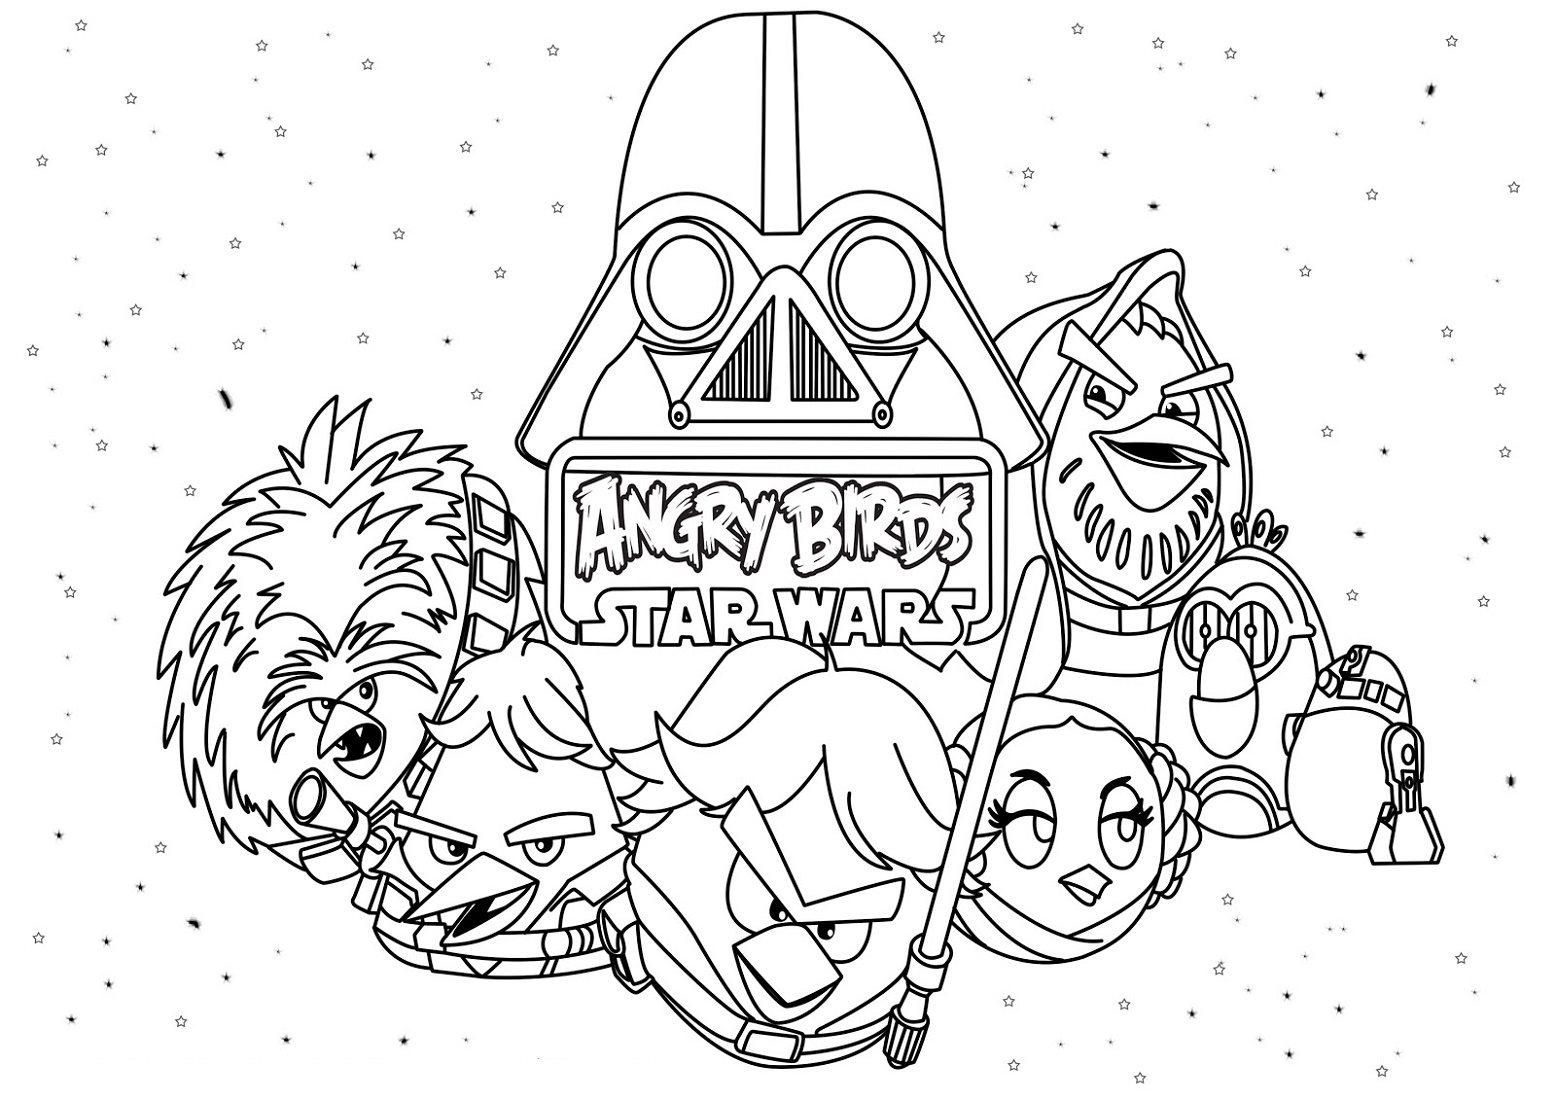 Angry Birds Star Wars Coloring Pages Downloadable